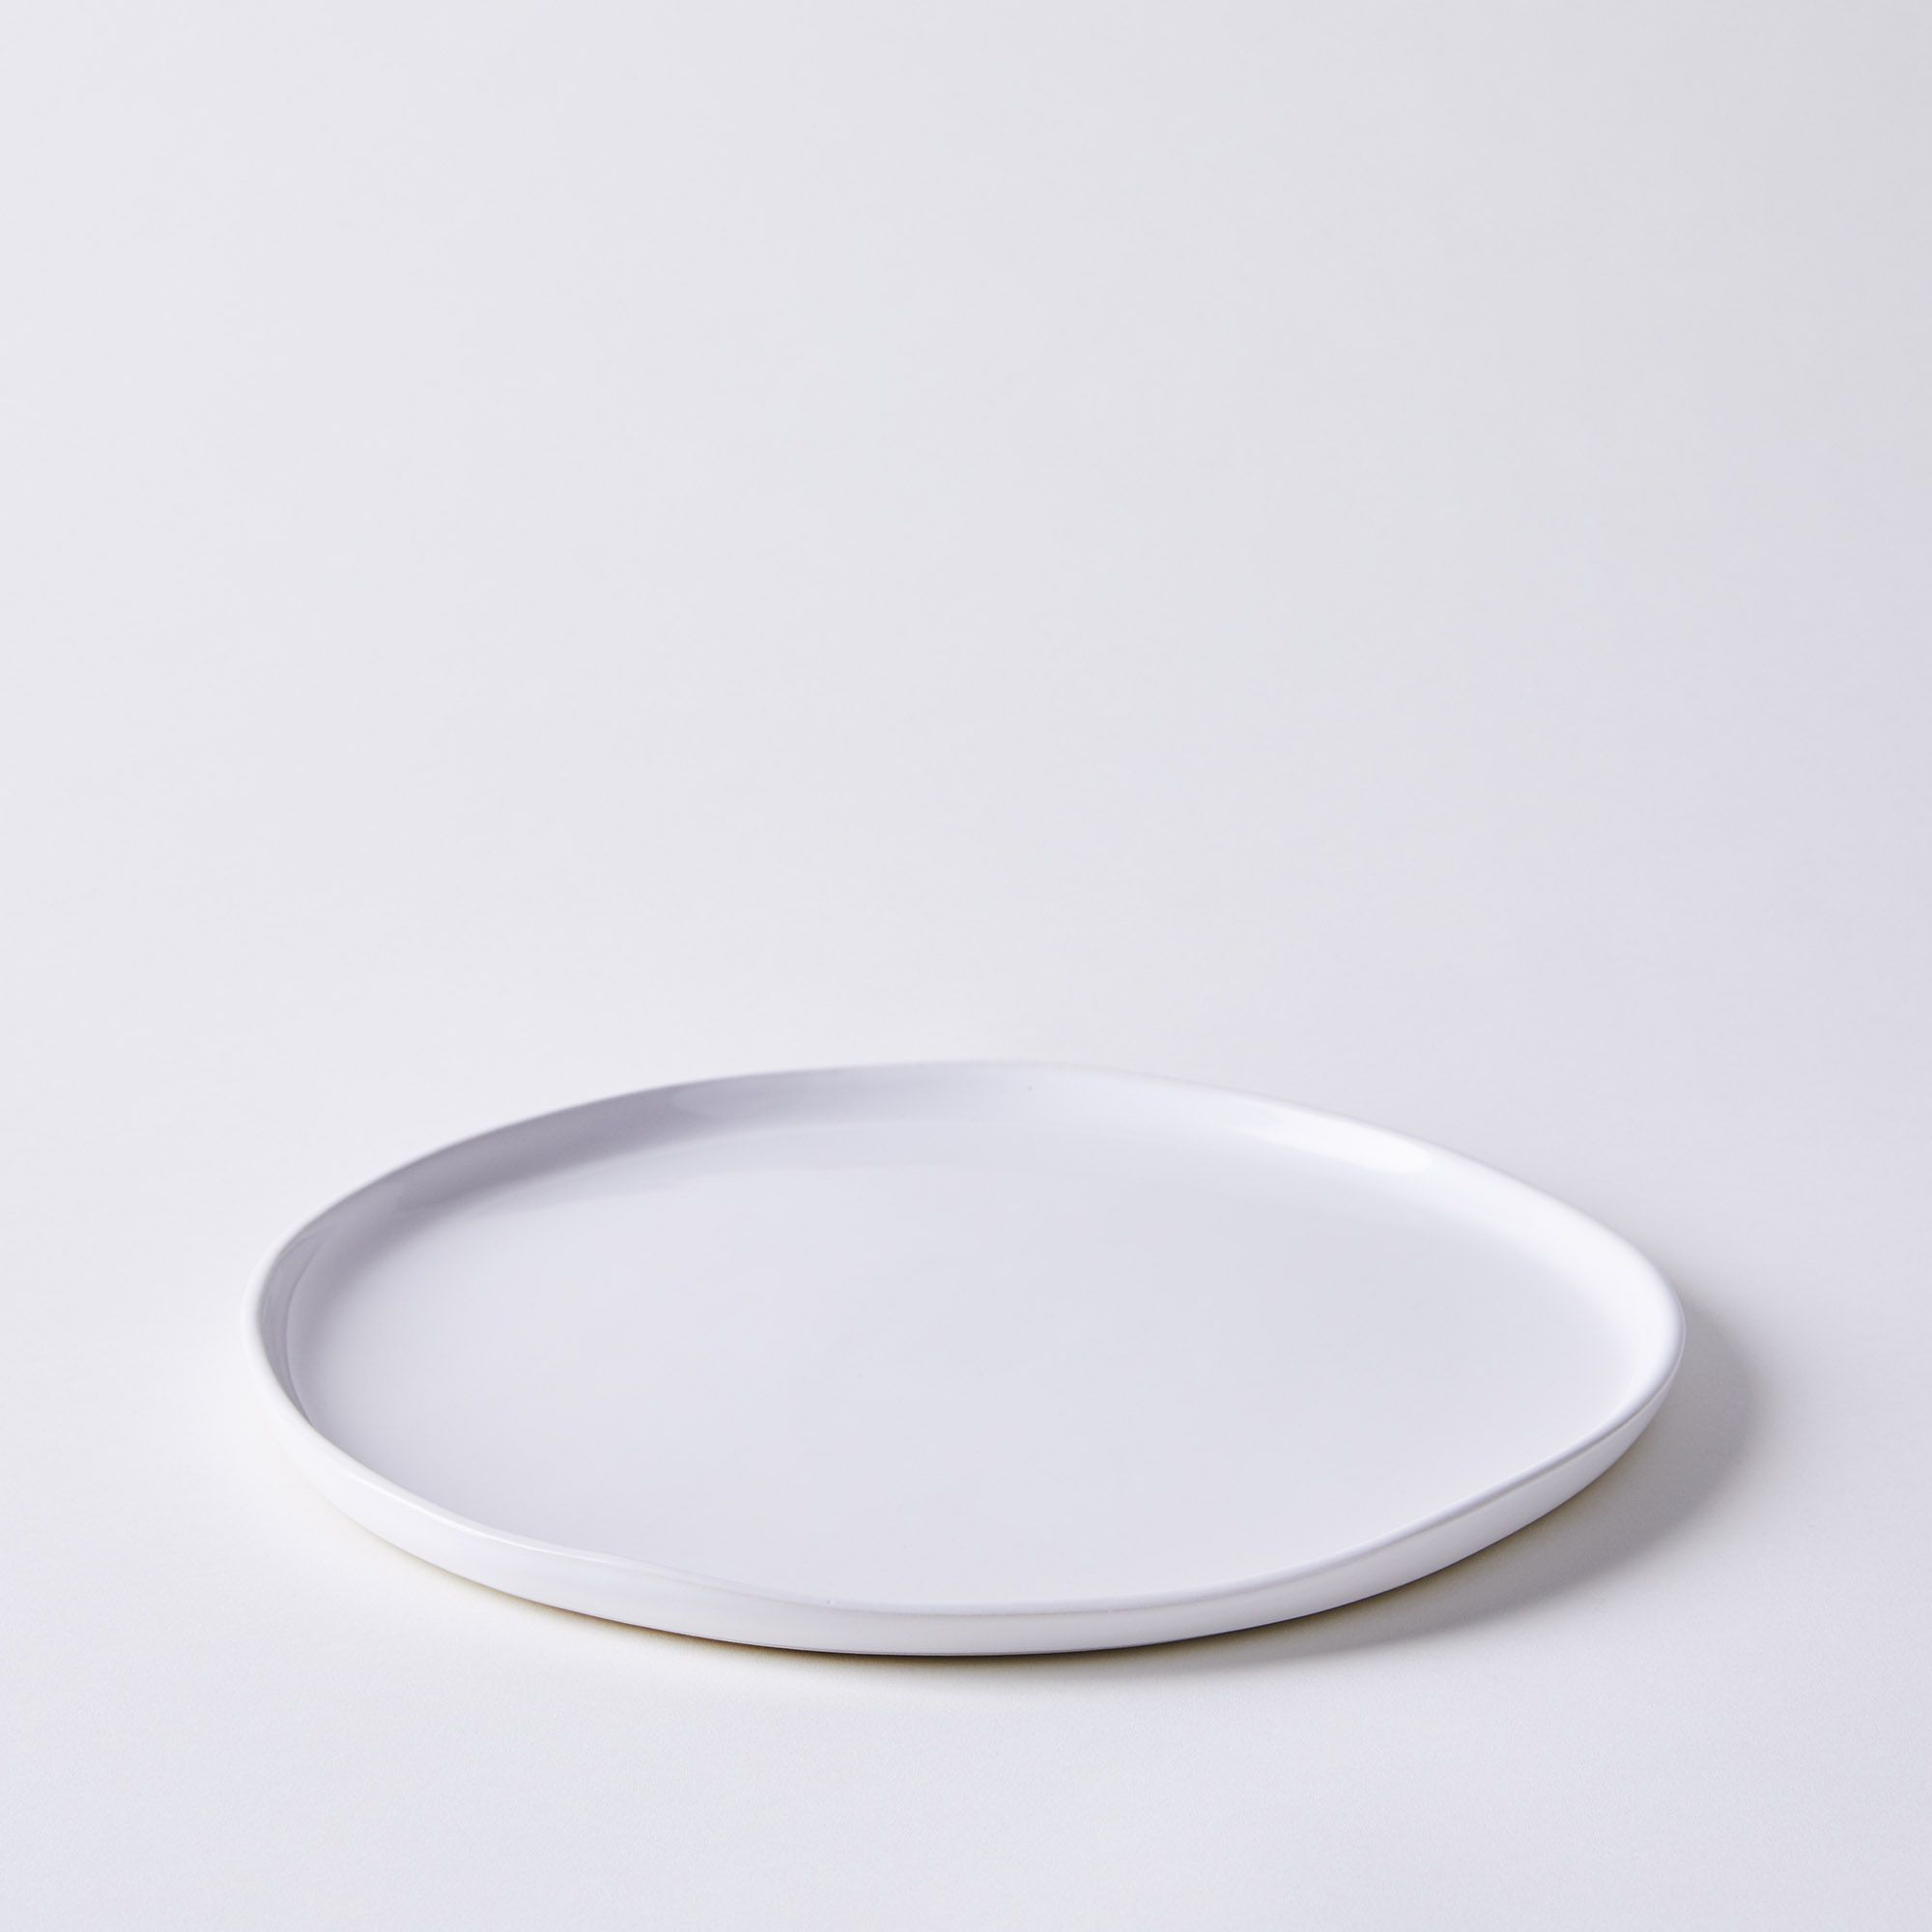 Alex Marshall Studiosalex Marshall Studios Design Your Own Dinnerware Organic Edge Plate Gloss White Dinner Plate Dailymail